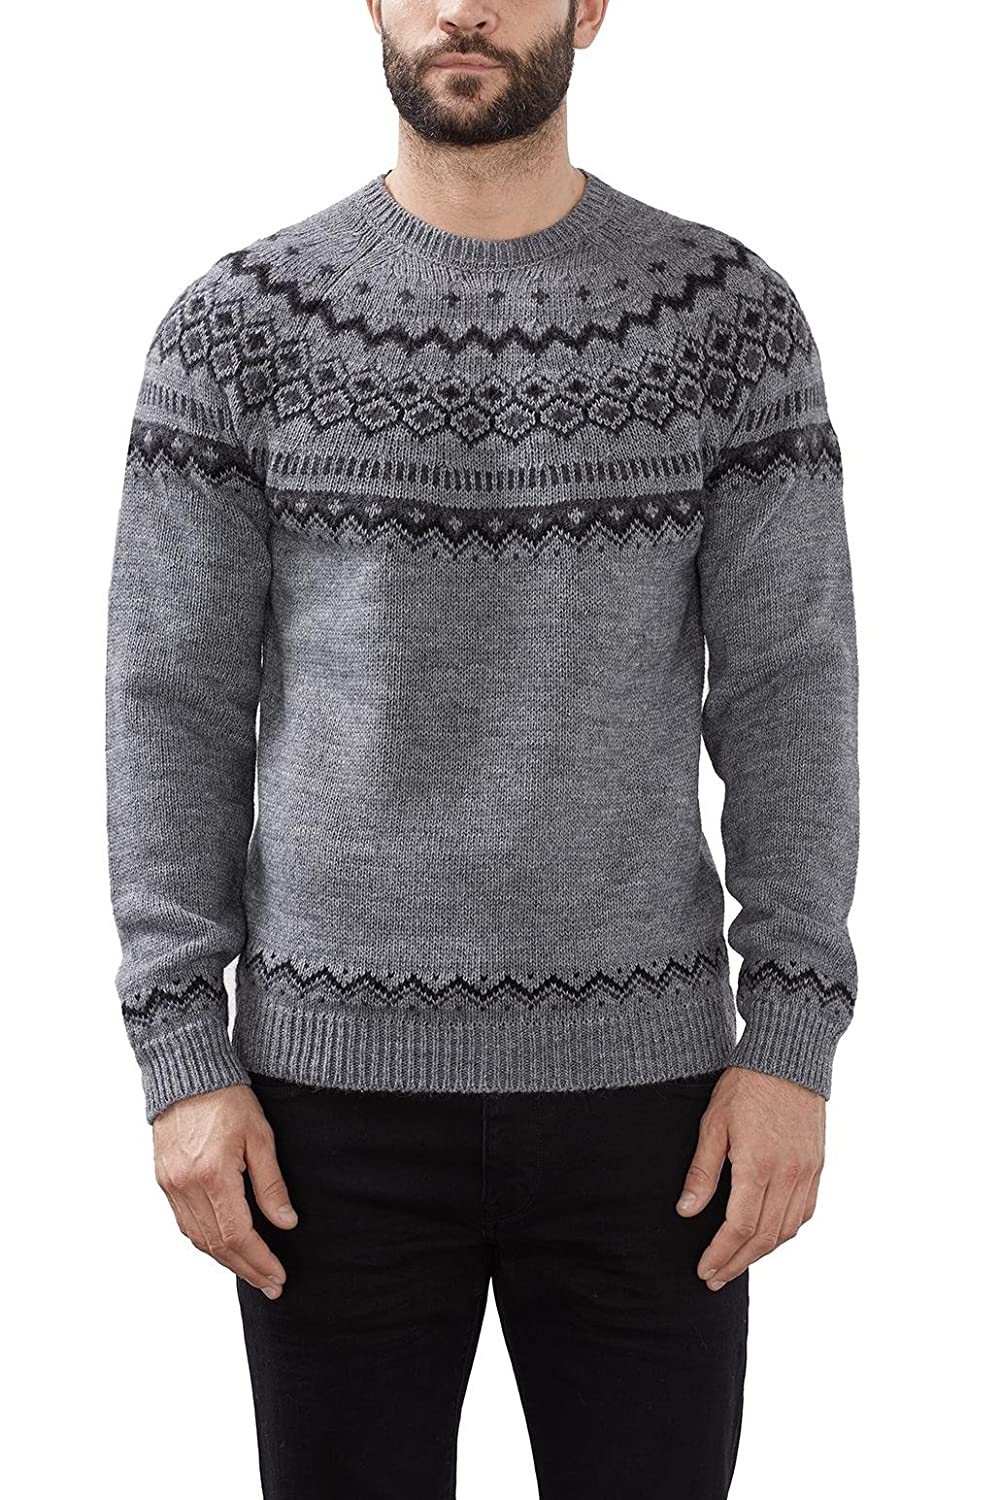 ESPRIT Men's 116ee2i010 Jumper